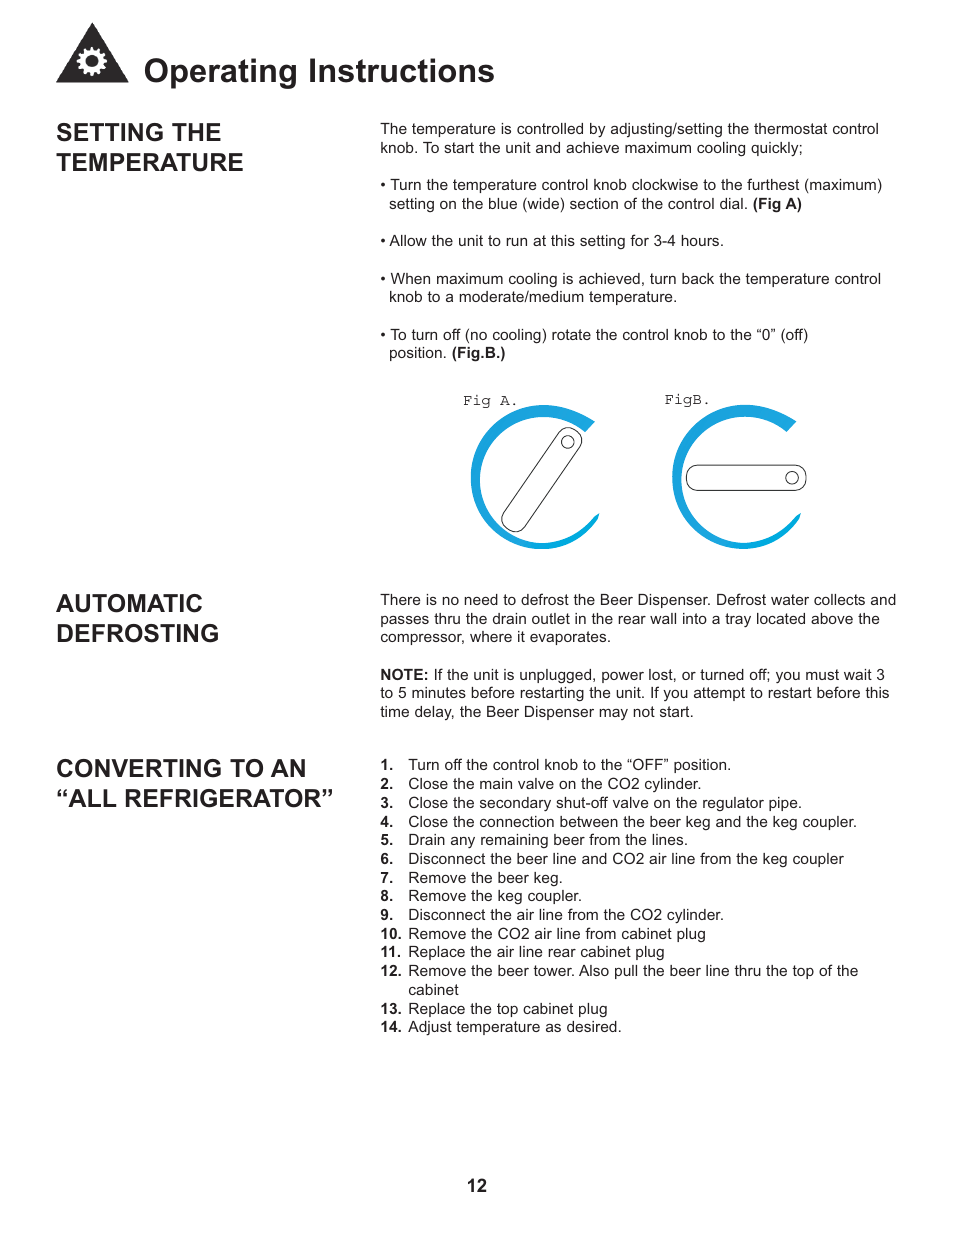 Operating instructions, Setting the temperature, Automatic